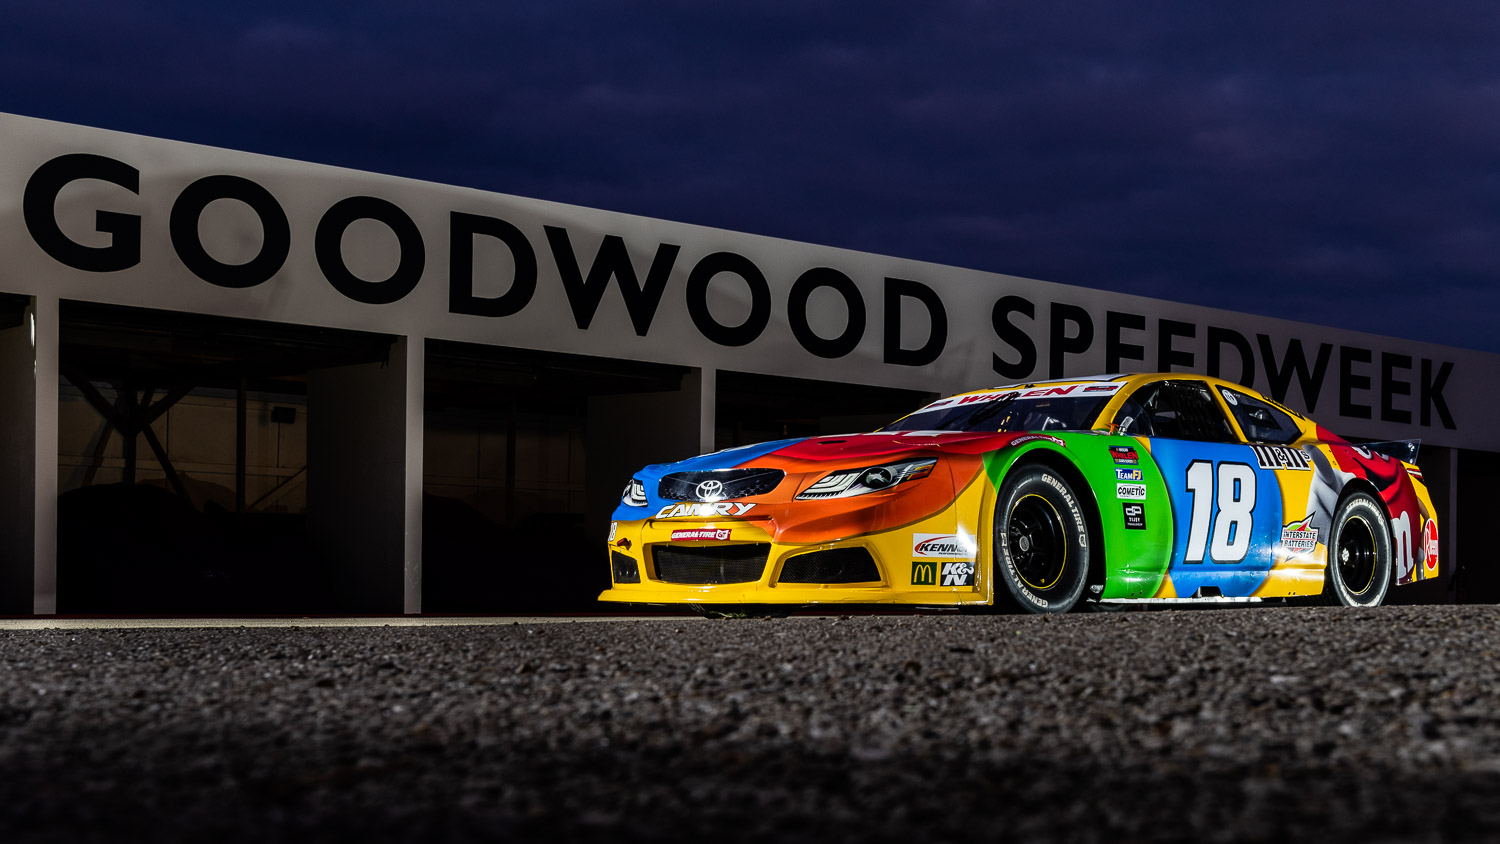 Euro Nascar Goodwood Speedweek